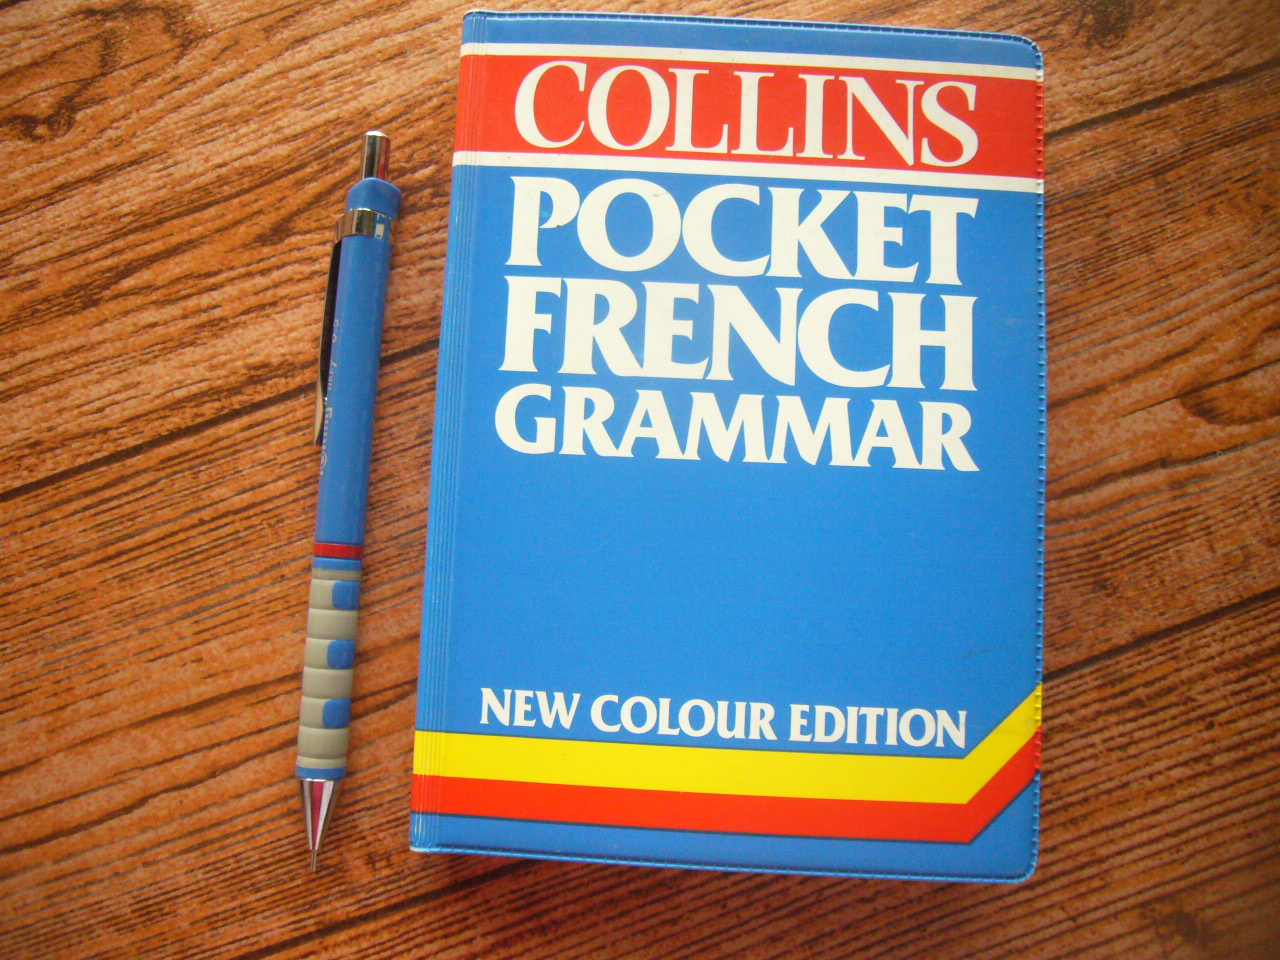 Collins Pocket French Grammar (New Colour Edition)